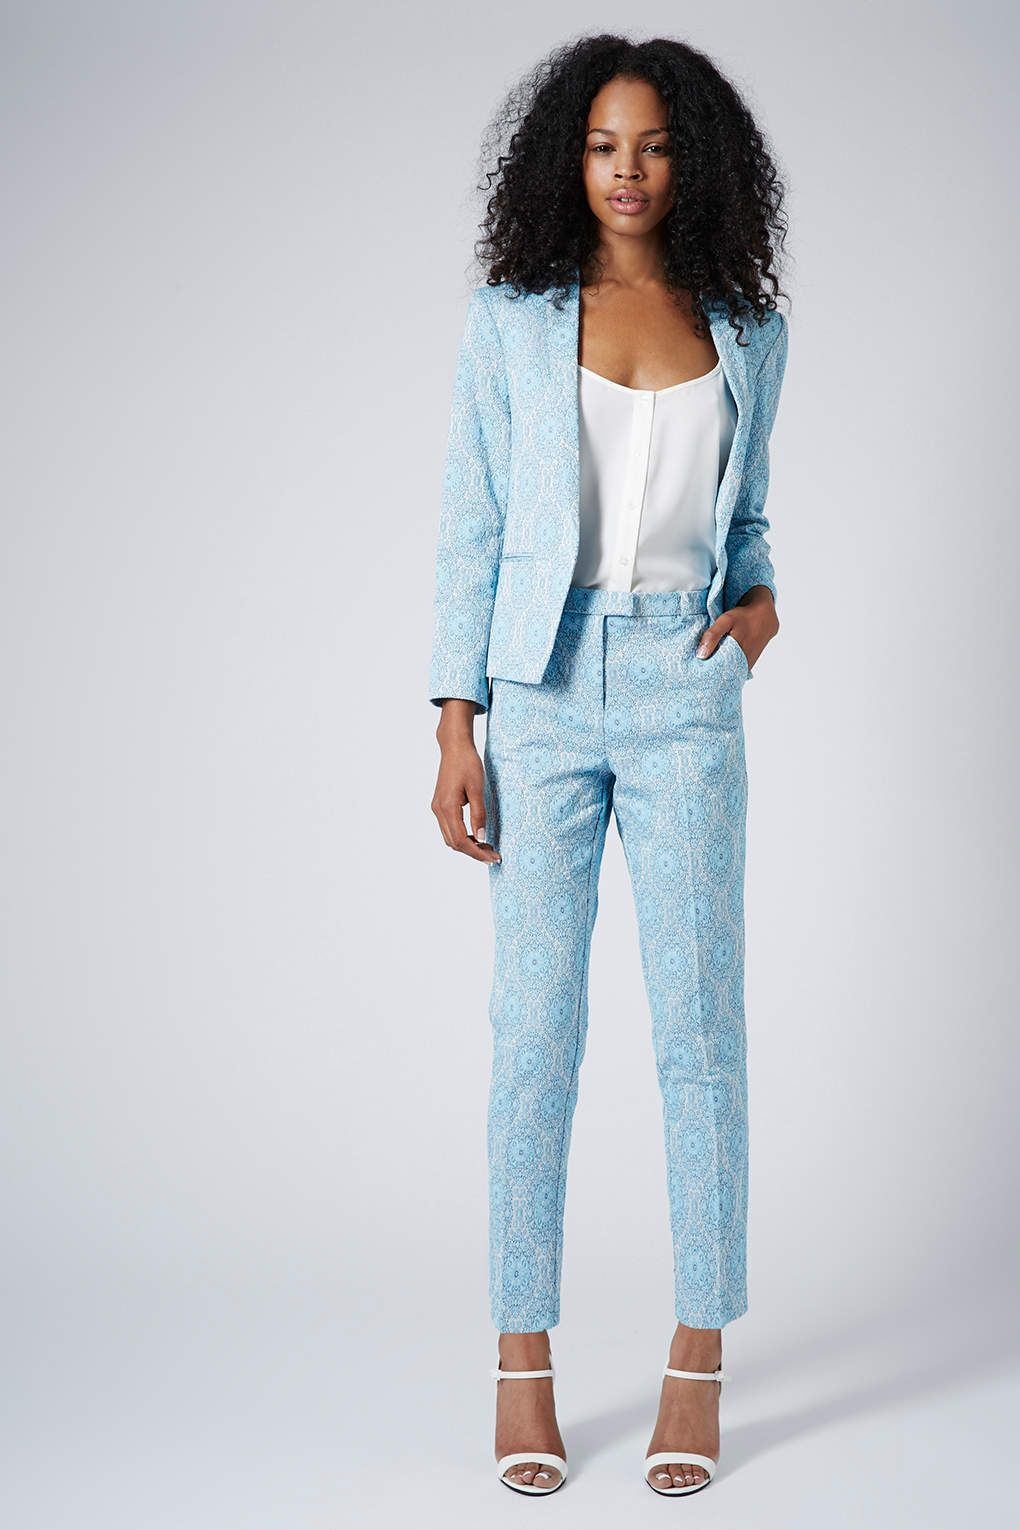 Tile Lagoon Jacquard Blazer and Cigarette Trousers - Suits and Co ...